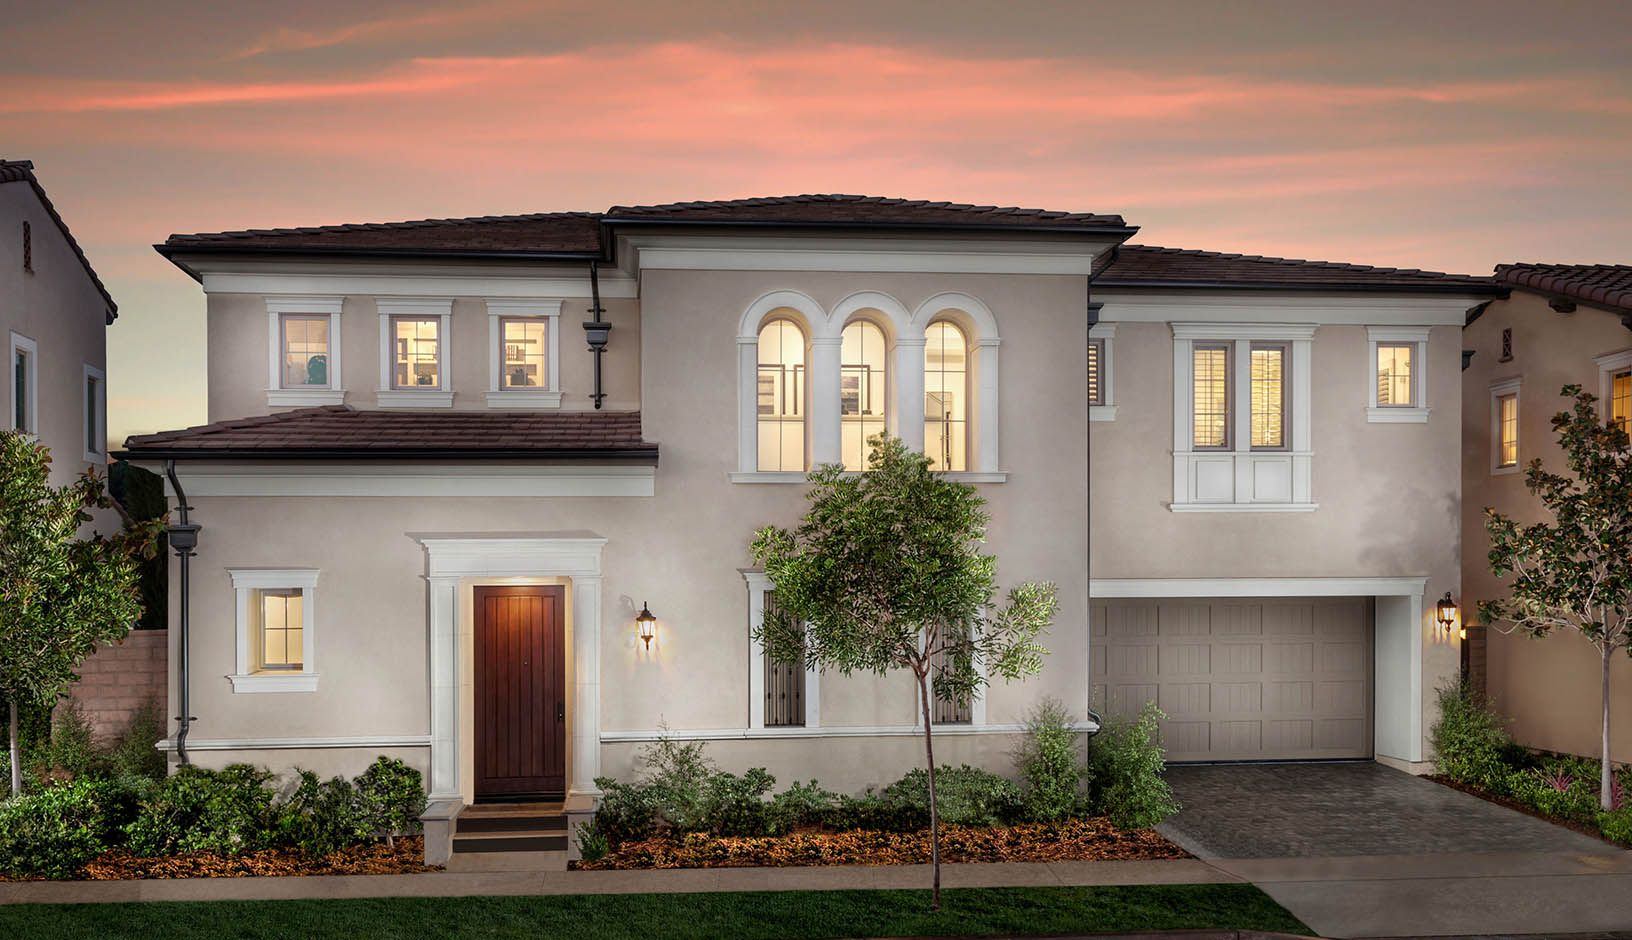 Single Family for Sale at Varenna At Orchard Hills - Residence 2 57 Furlong Irvine, California 92602 United States